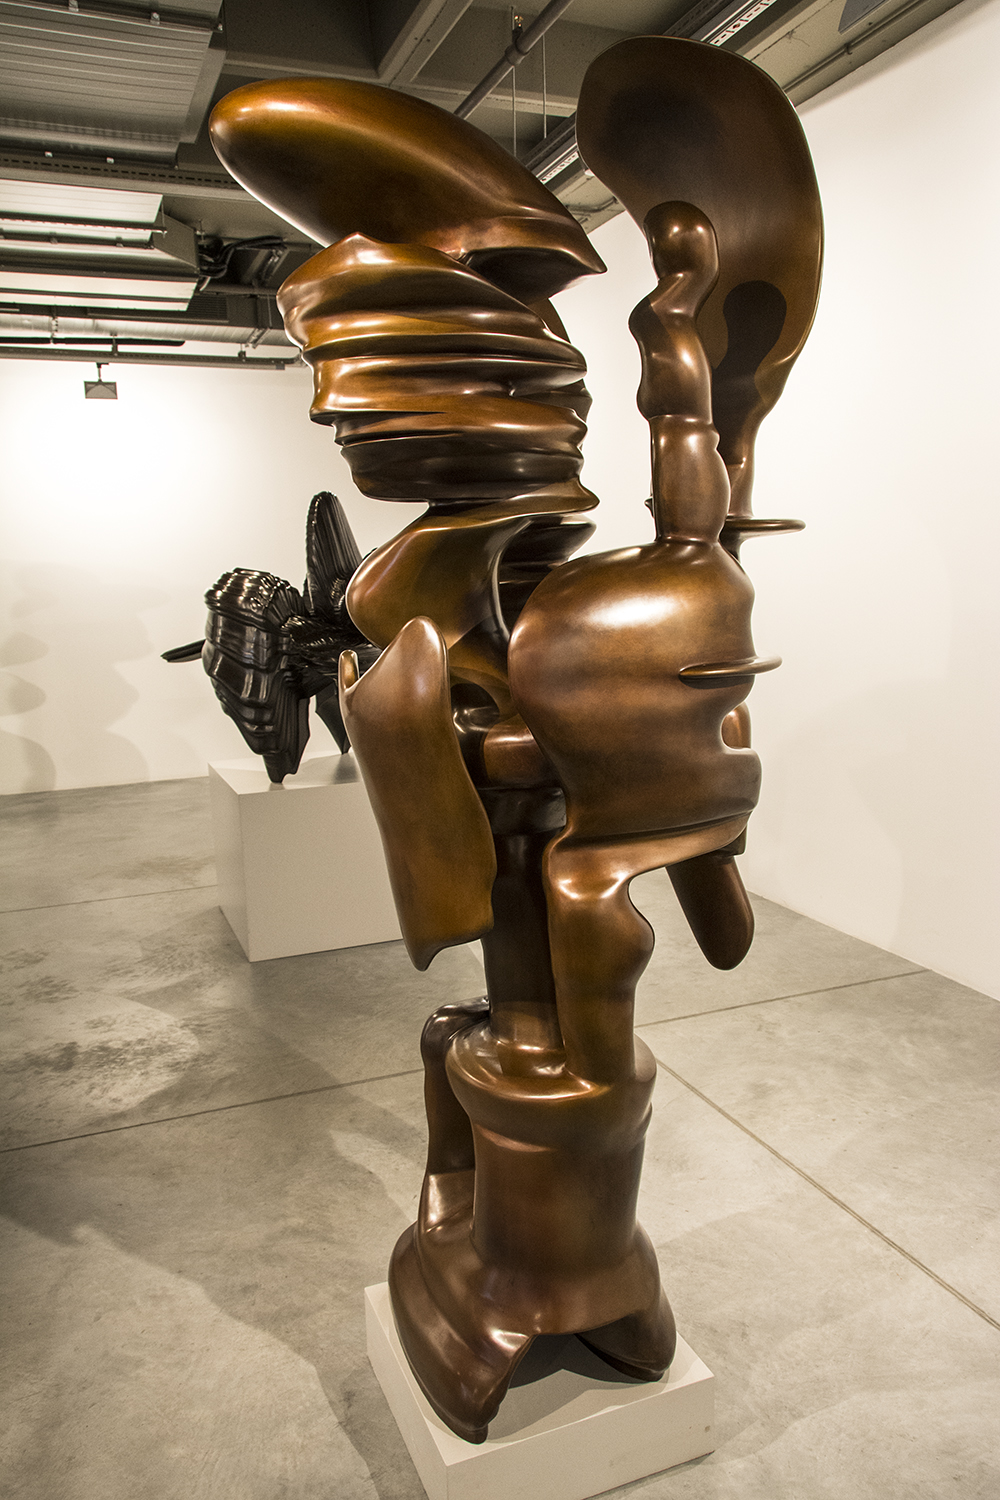 Sculpture by Anthony Cragg